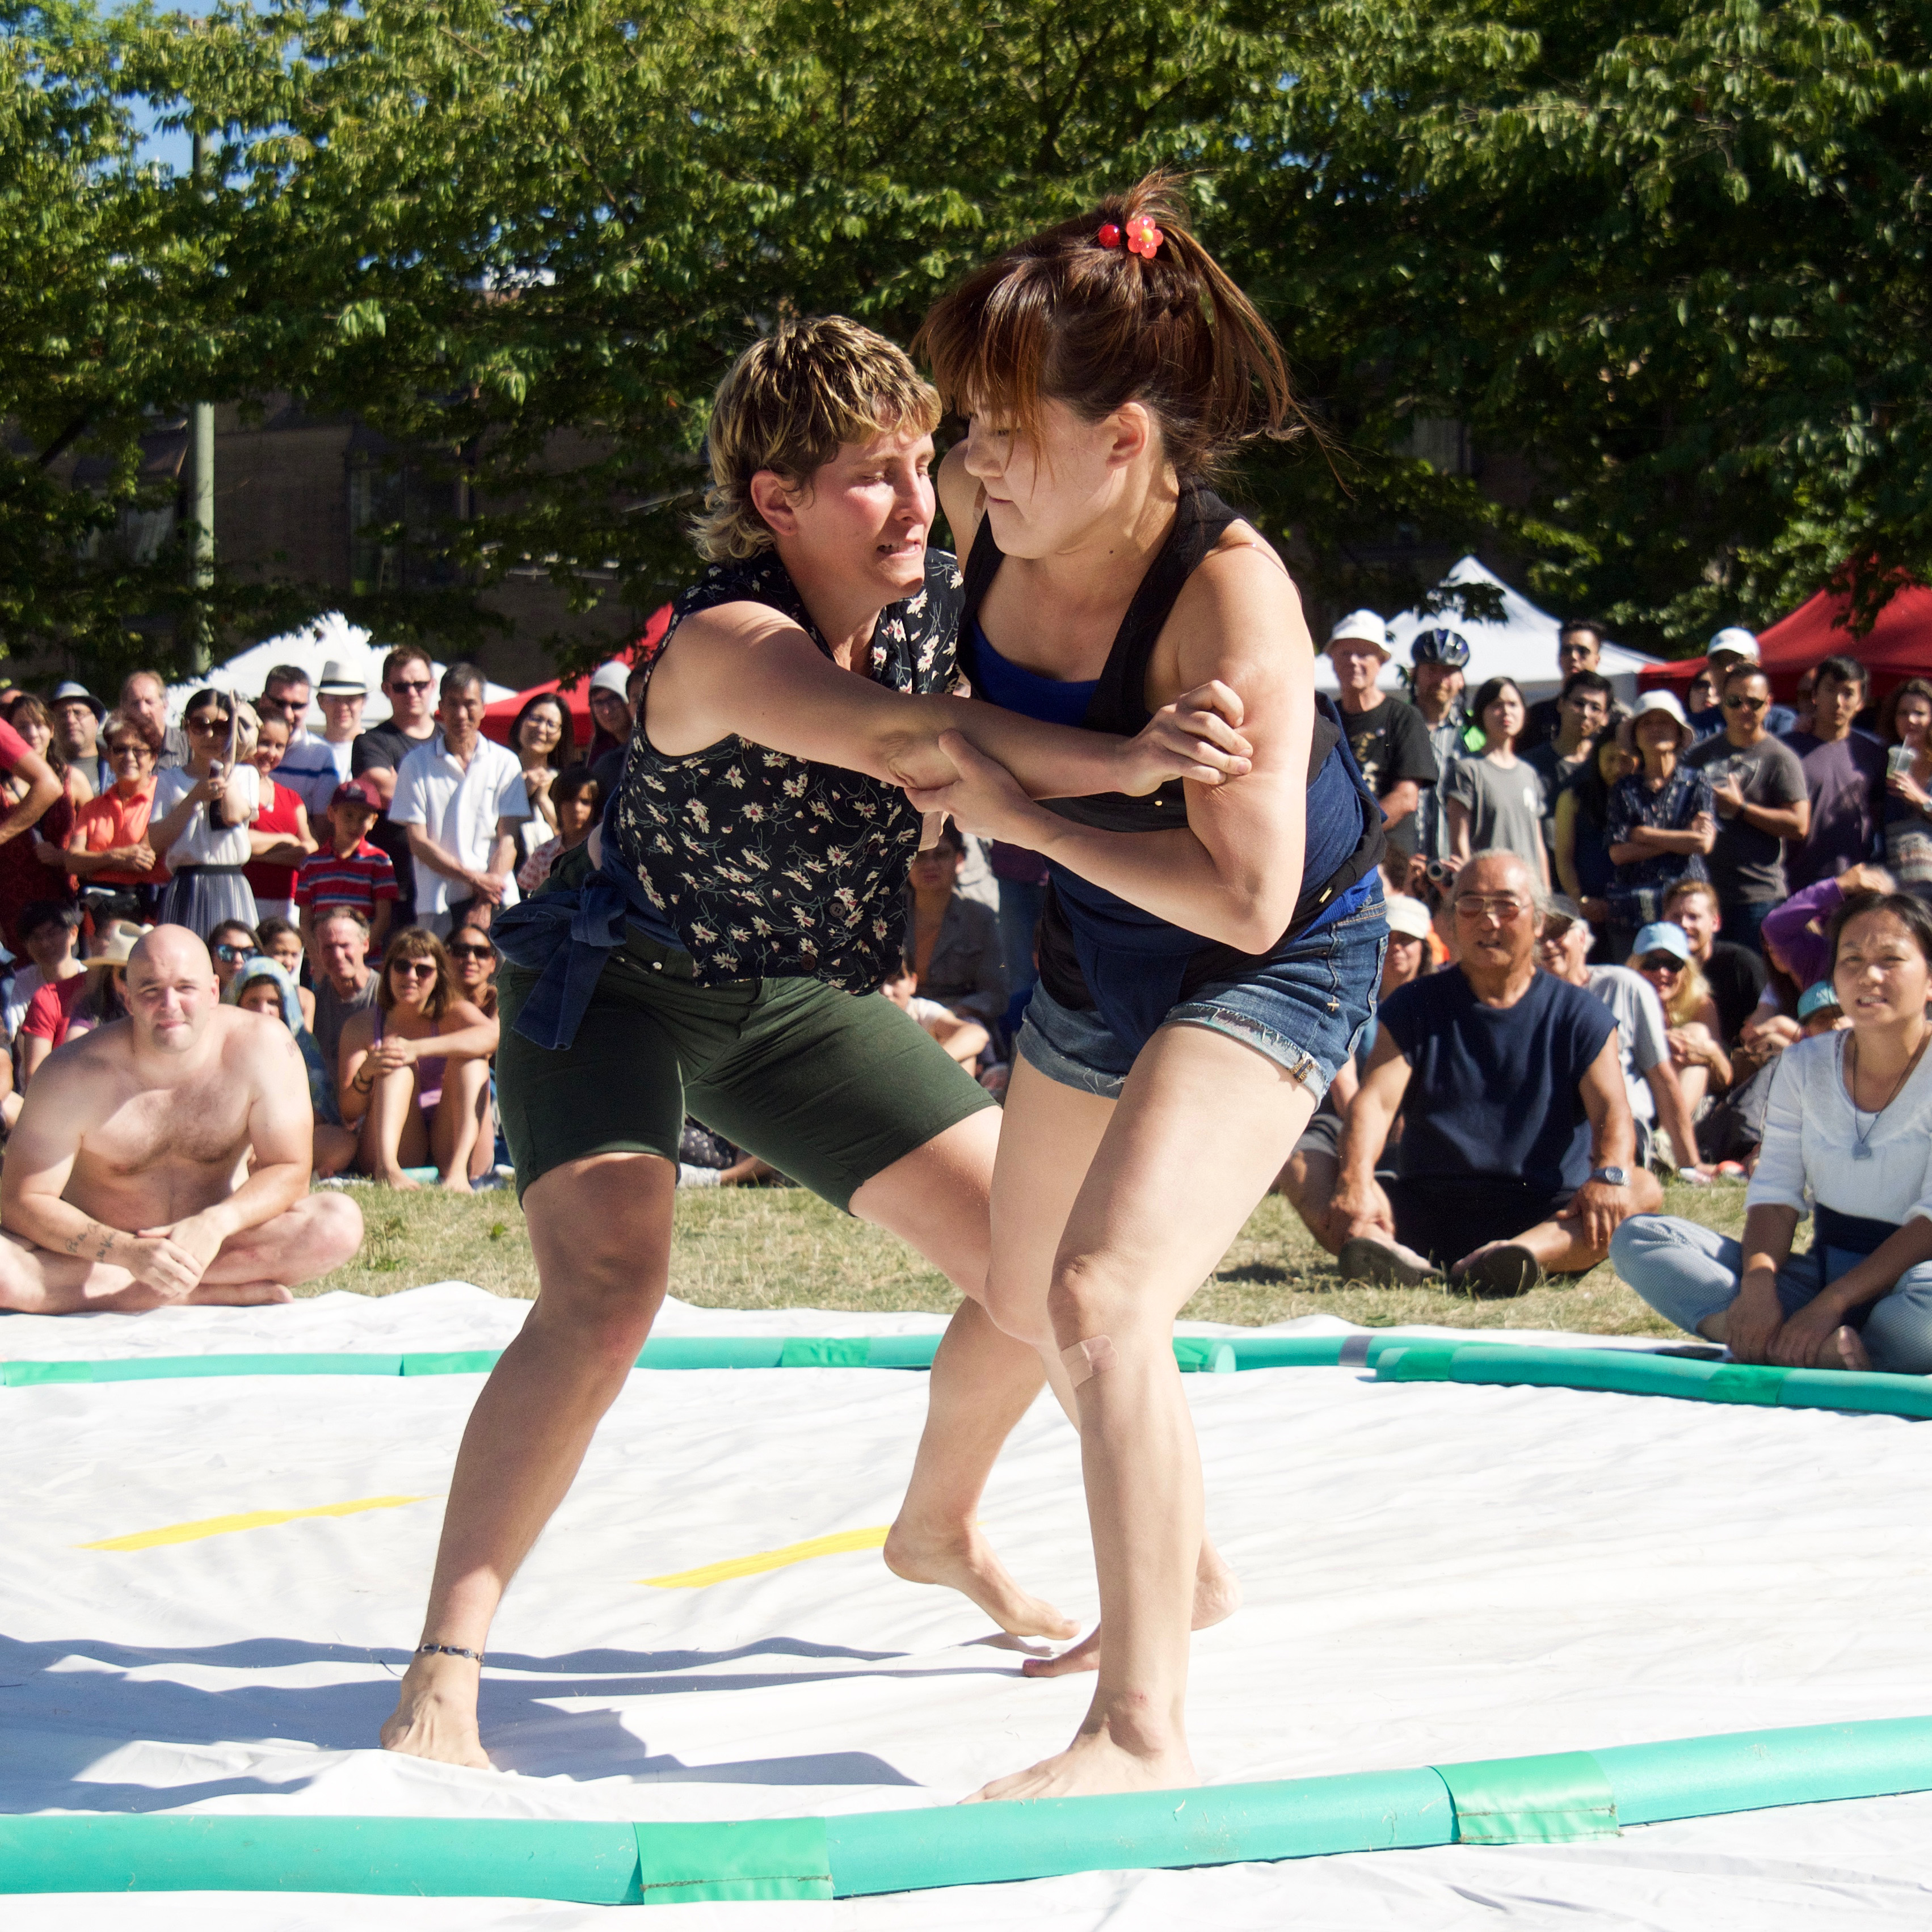 Photo of Sumo Tournament at 2016 Powell Street Festival by Ed Law